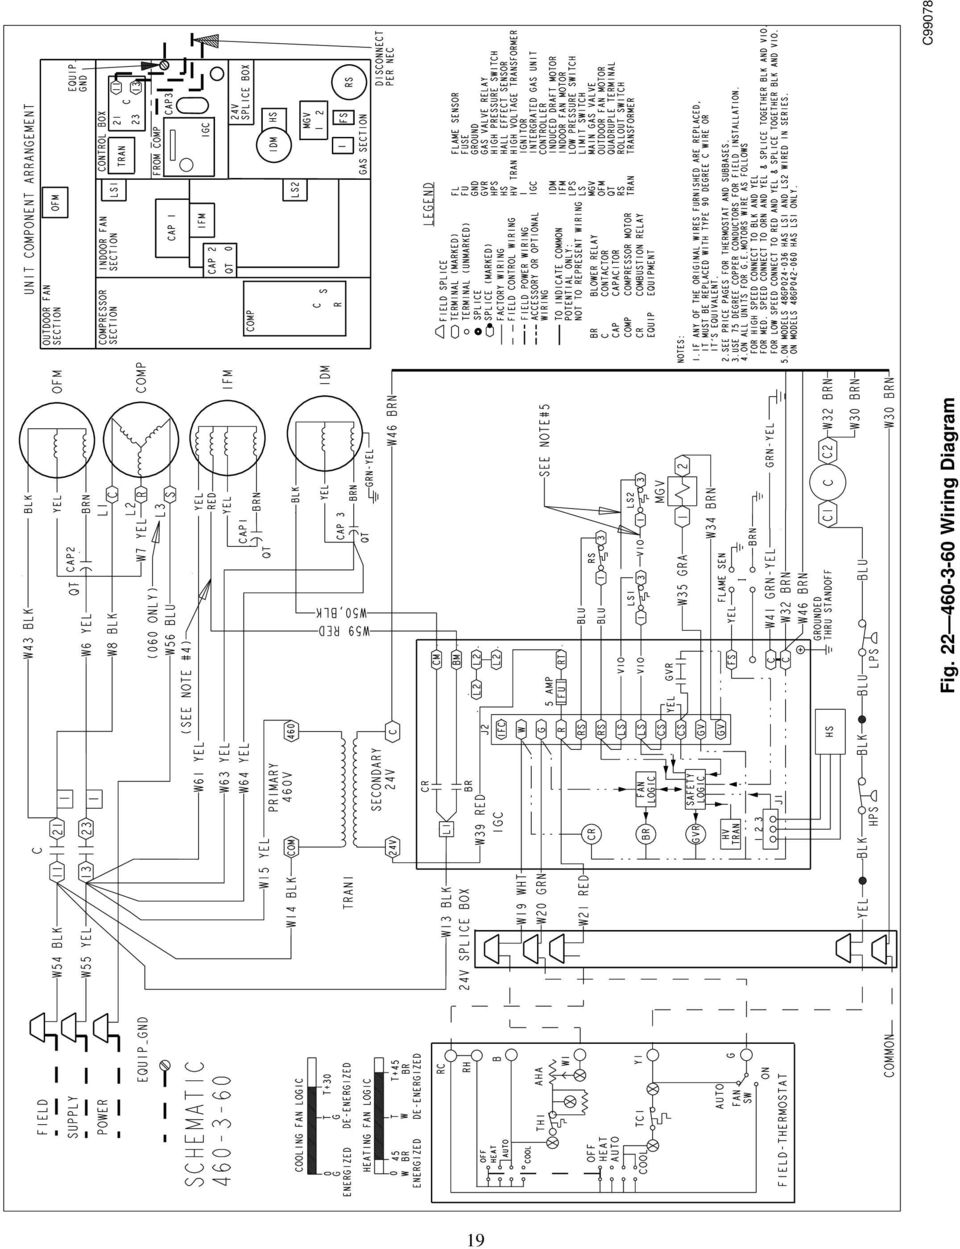 Installation Start Up And Operating Instructions 48gp 48gpn Sizes Wiring Diagram Air Pressor Hvac Superheat 19 Fig C